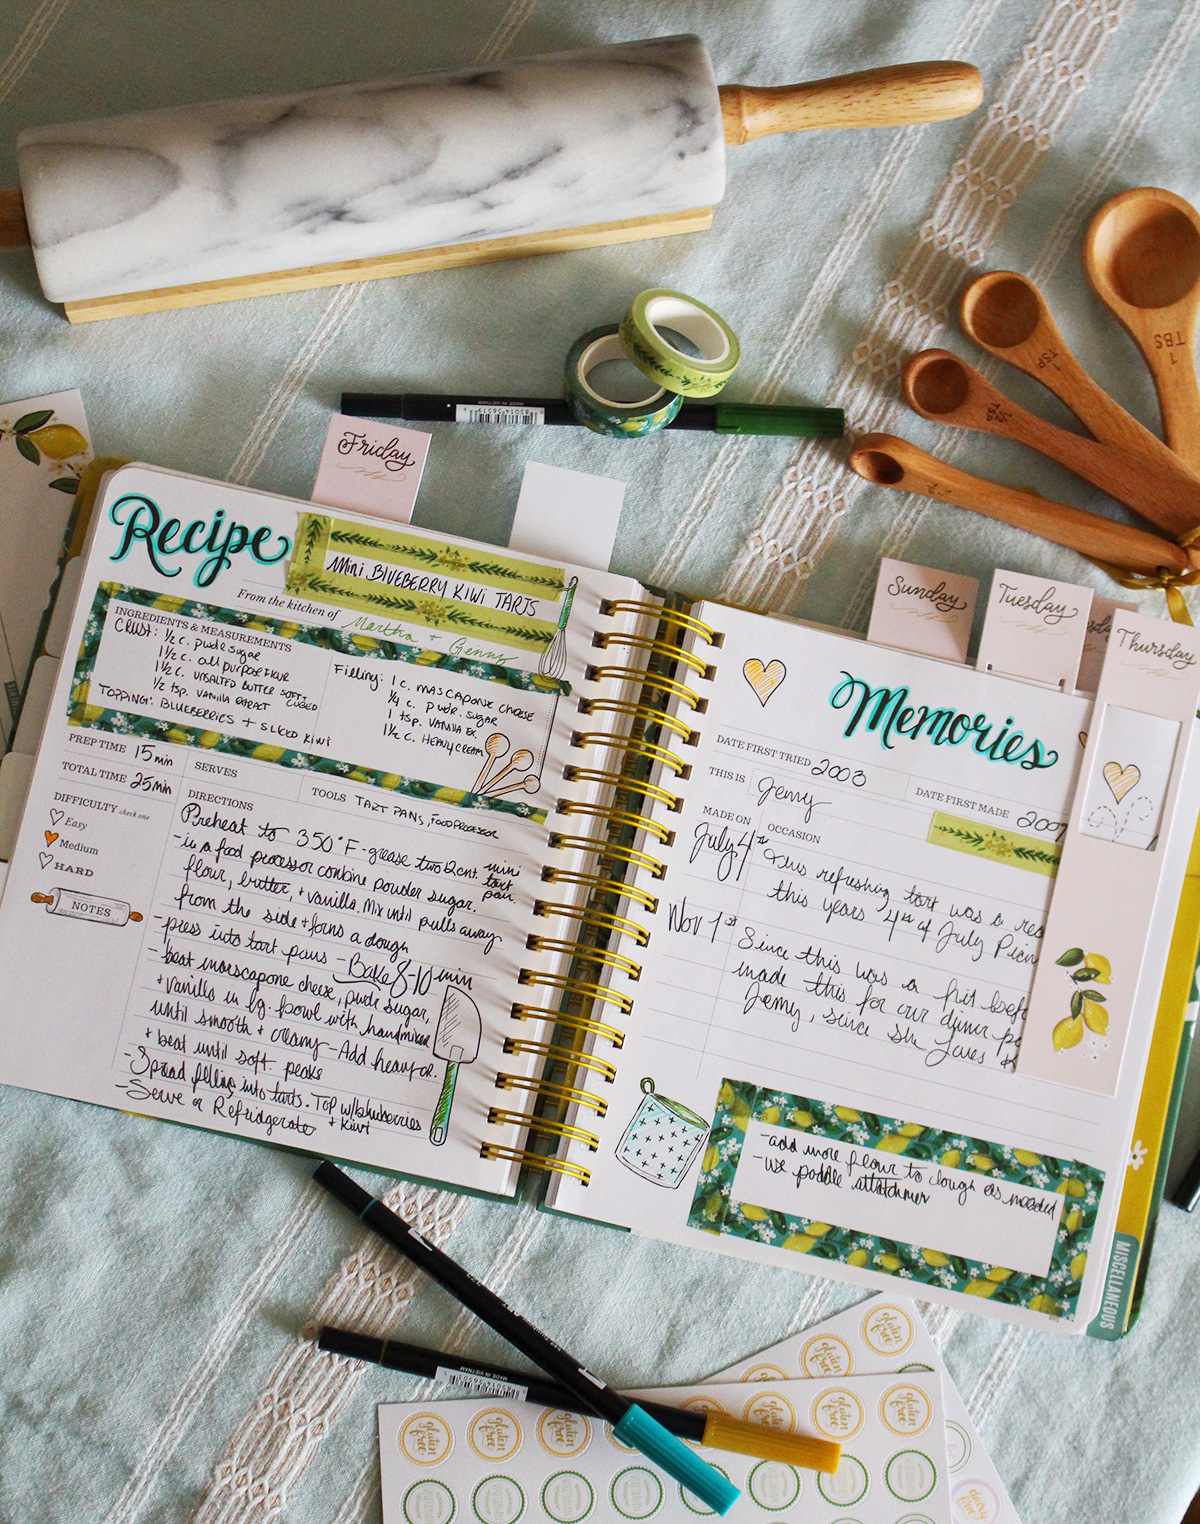 Keepsake Kitchen Diary Crafting Supplies now available